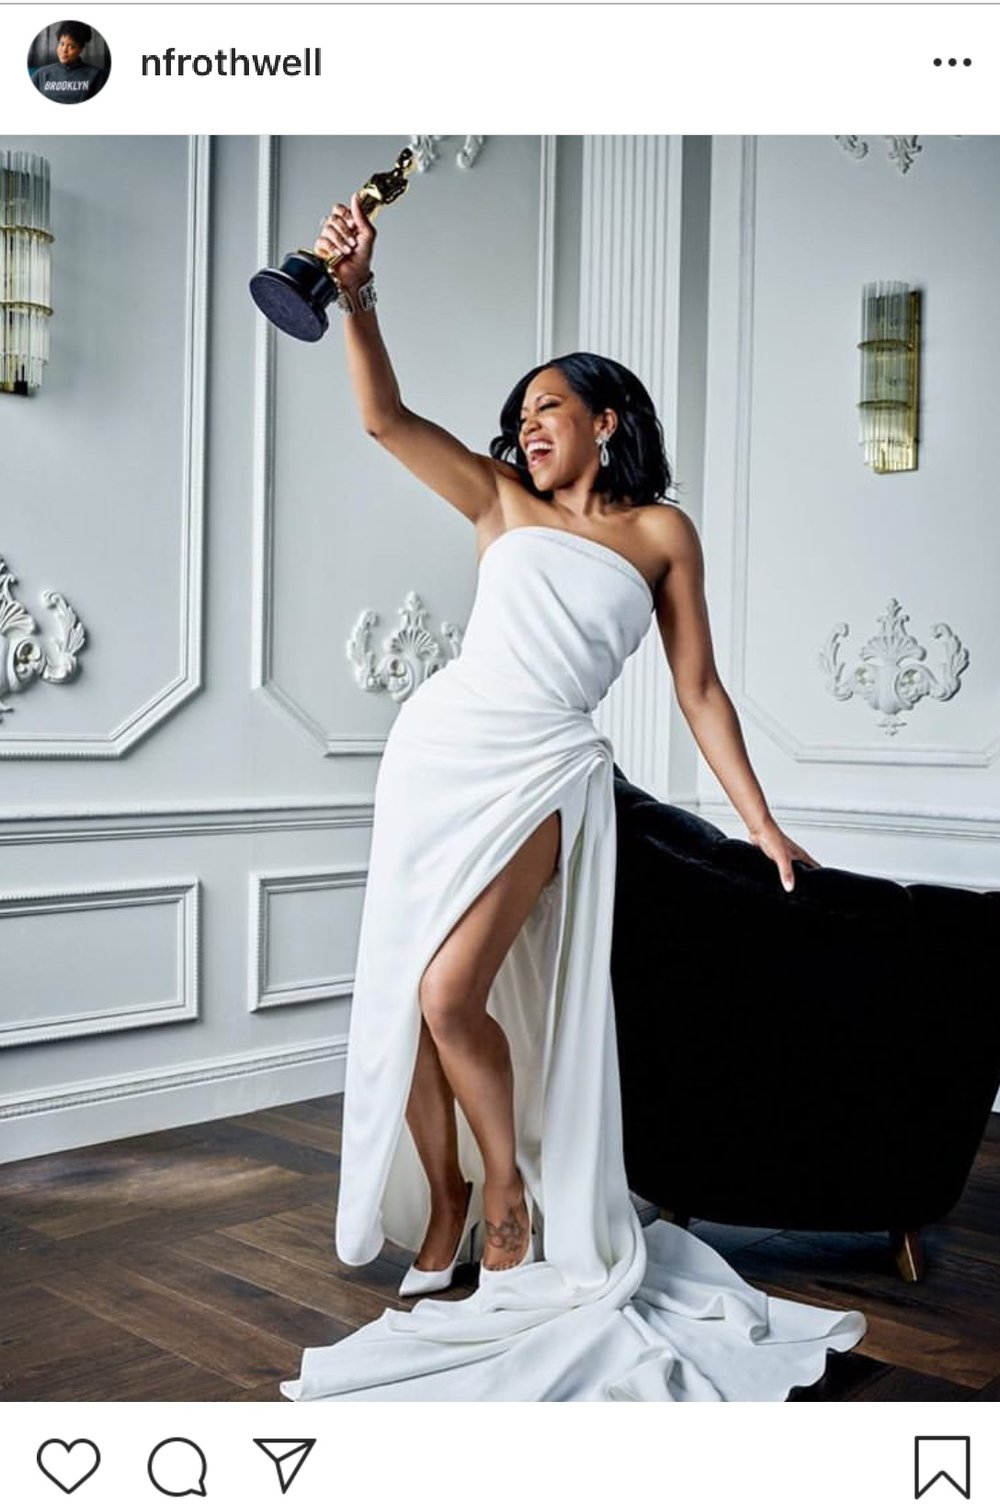 Regina King with her Oscar win. Image courtesyt of Instagram @nfrothwell